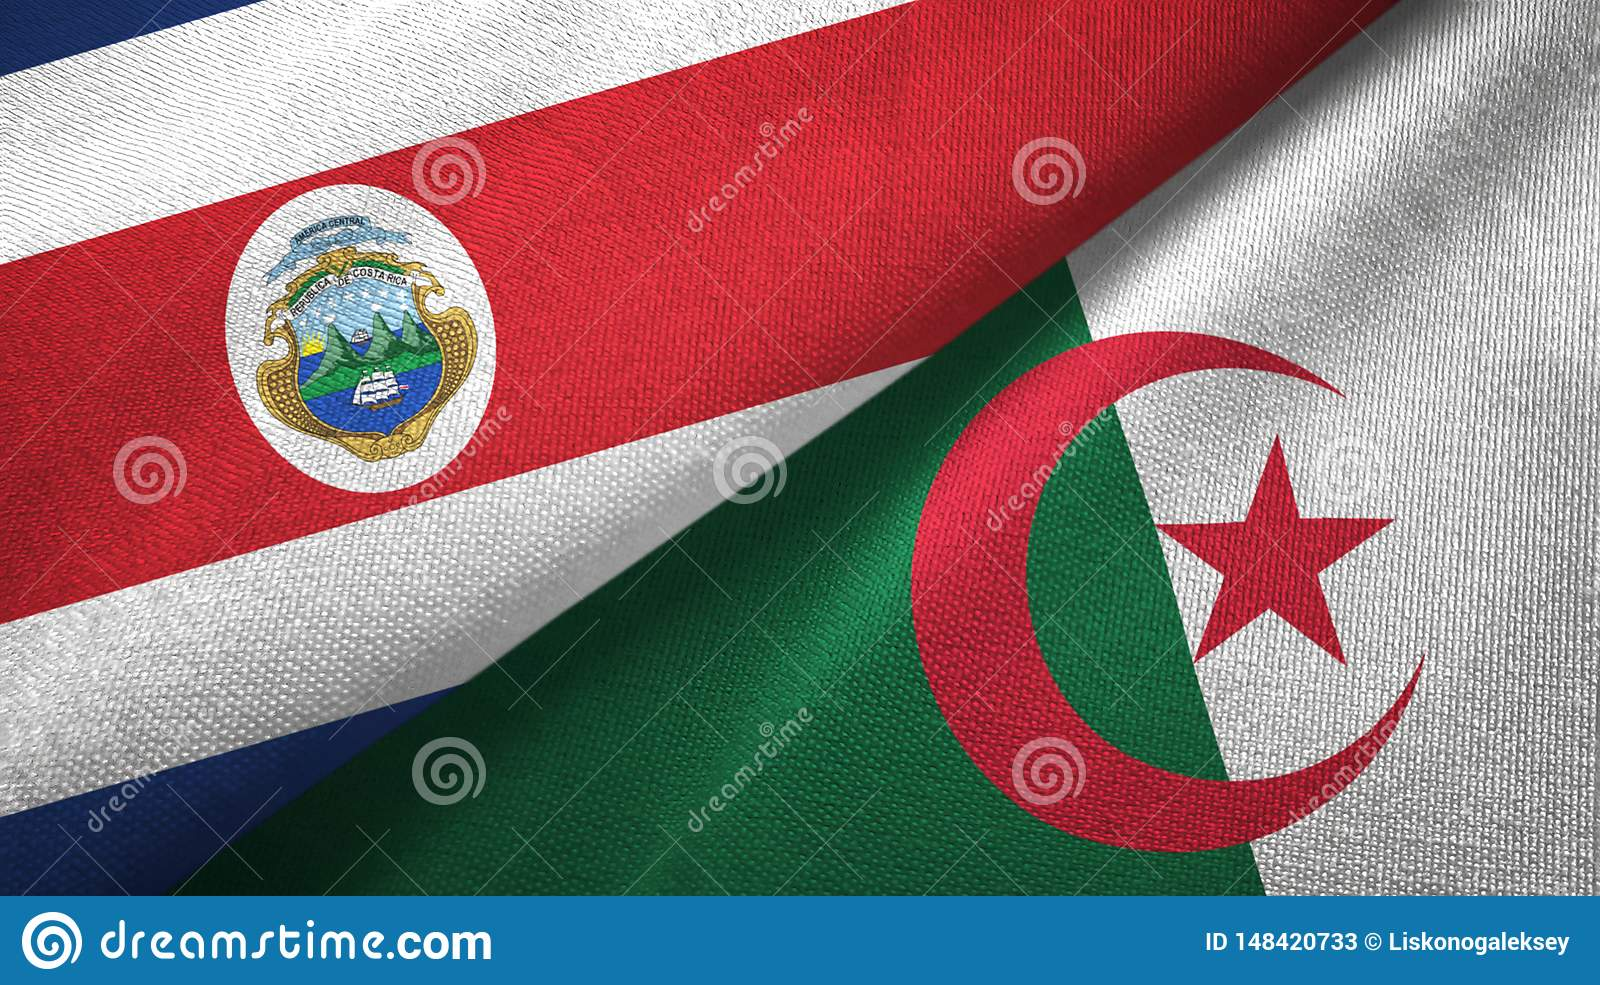 Costa Rica and Algeria two flags textile cloth, fabric texture